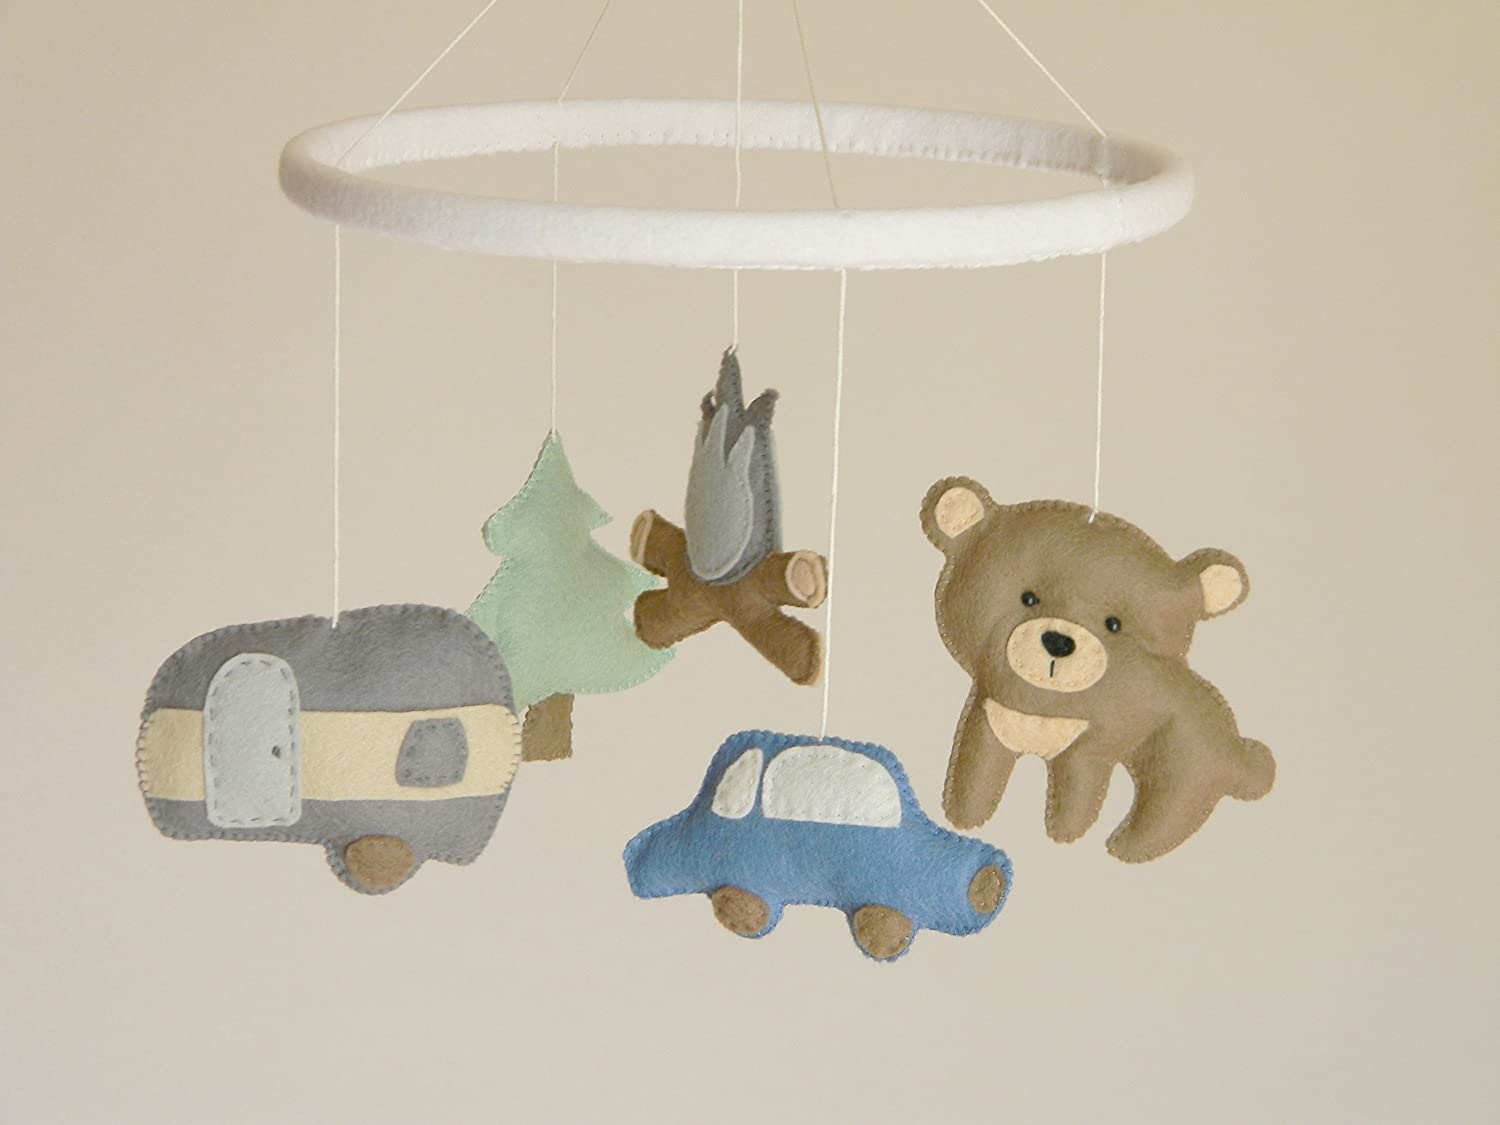 Camping baby mobile, Felt stuffed animals mobile, Woodland baby mobile ,Transportation boy mobile,Travel nursery decor, Felt car bear tree camper